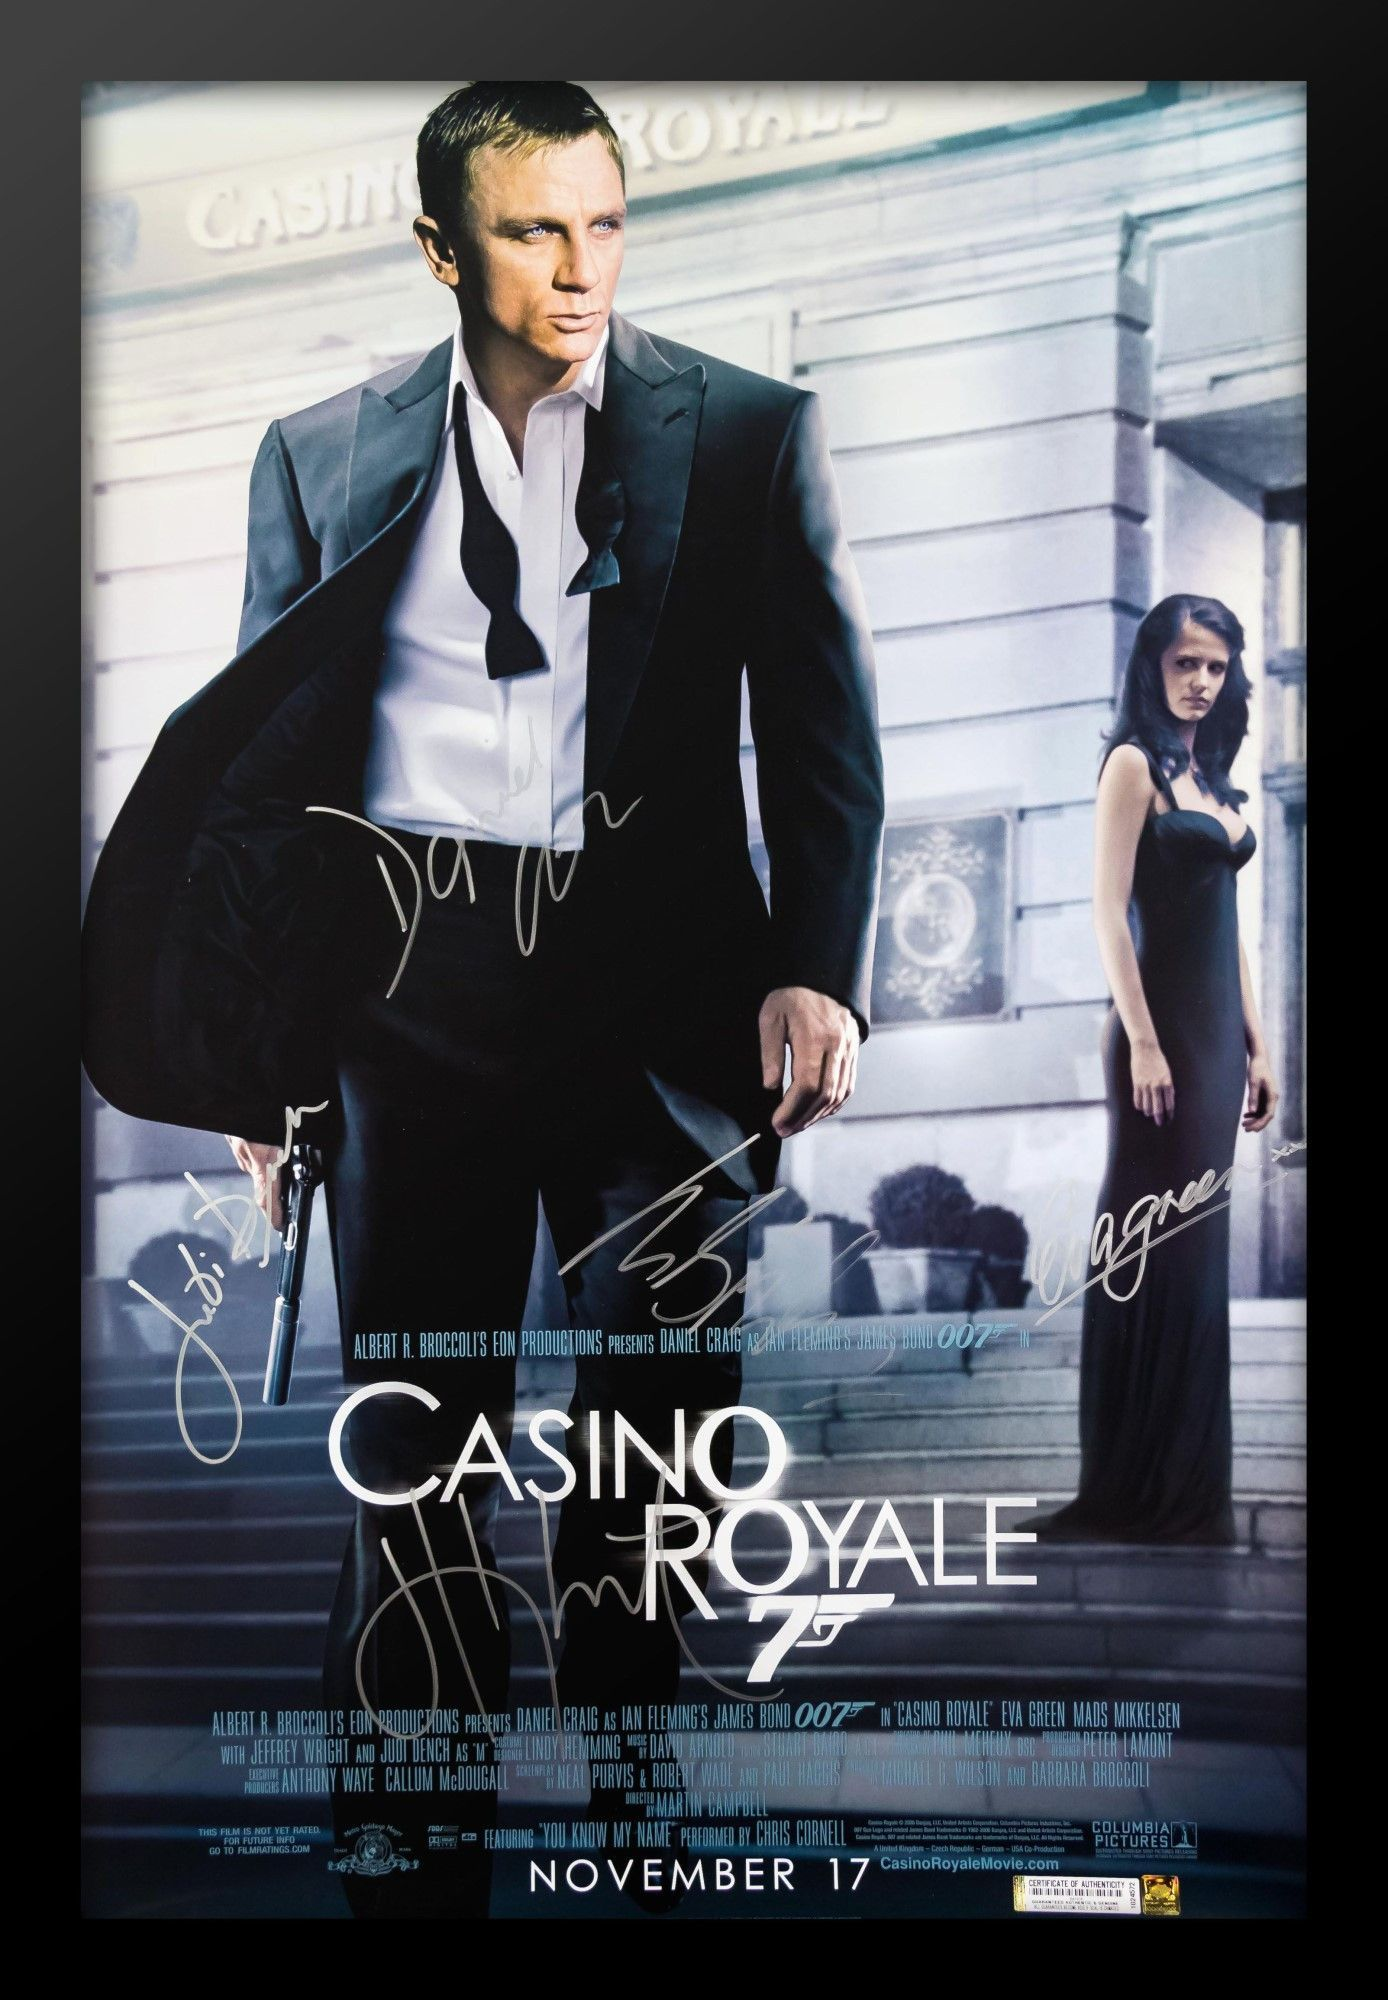 James bond casino royal streaming vf youwatch casino 777 bonus code